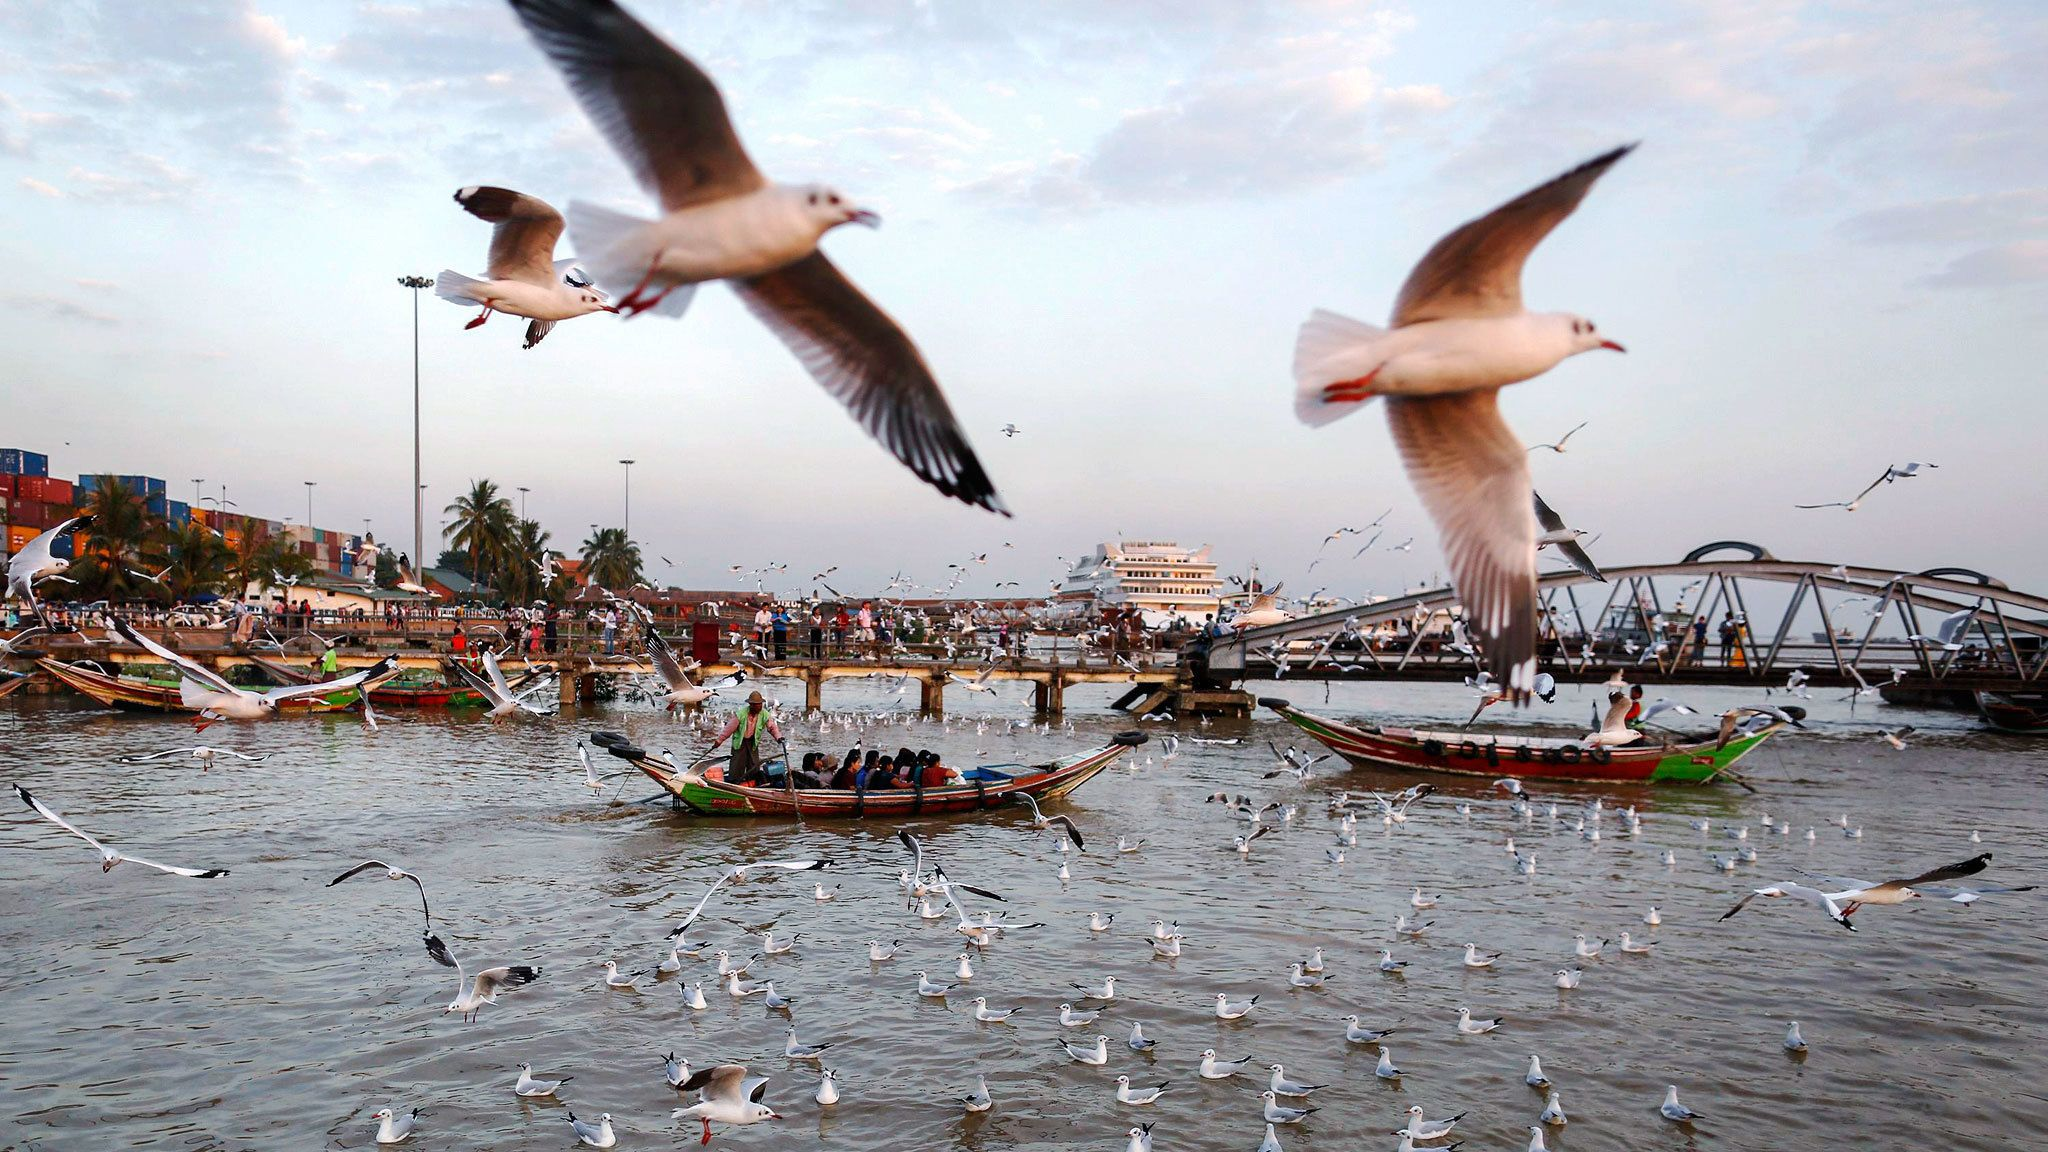 Boats surrounded by seagulls on the Yangon River in Myanmar